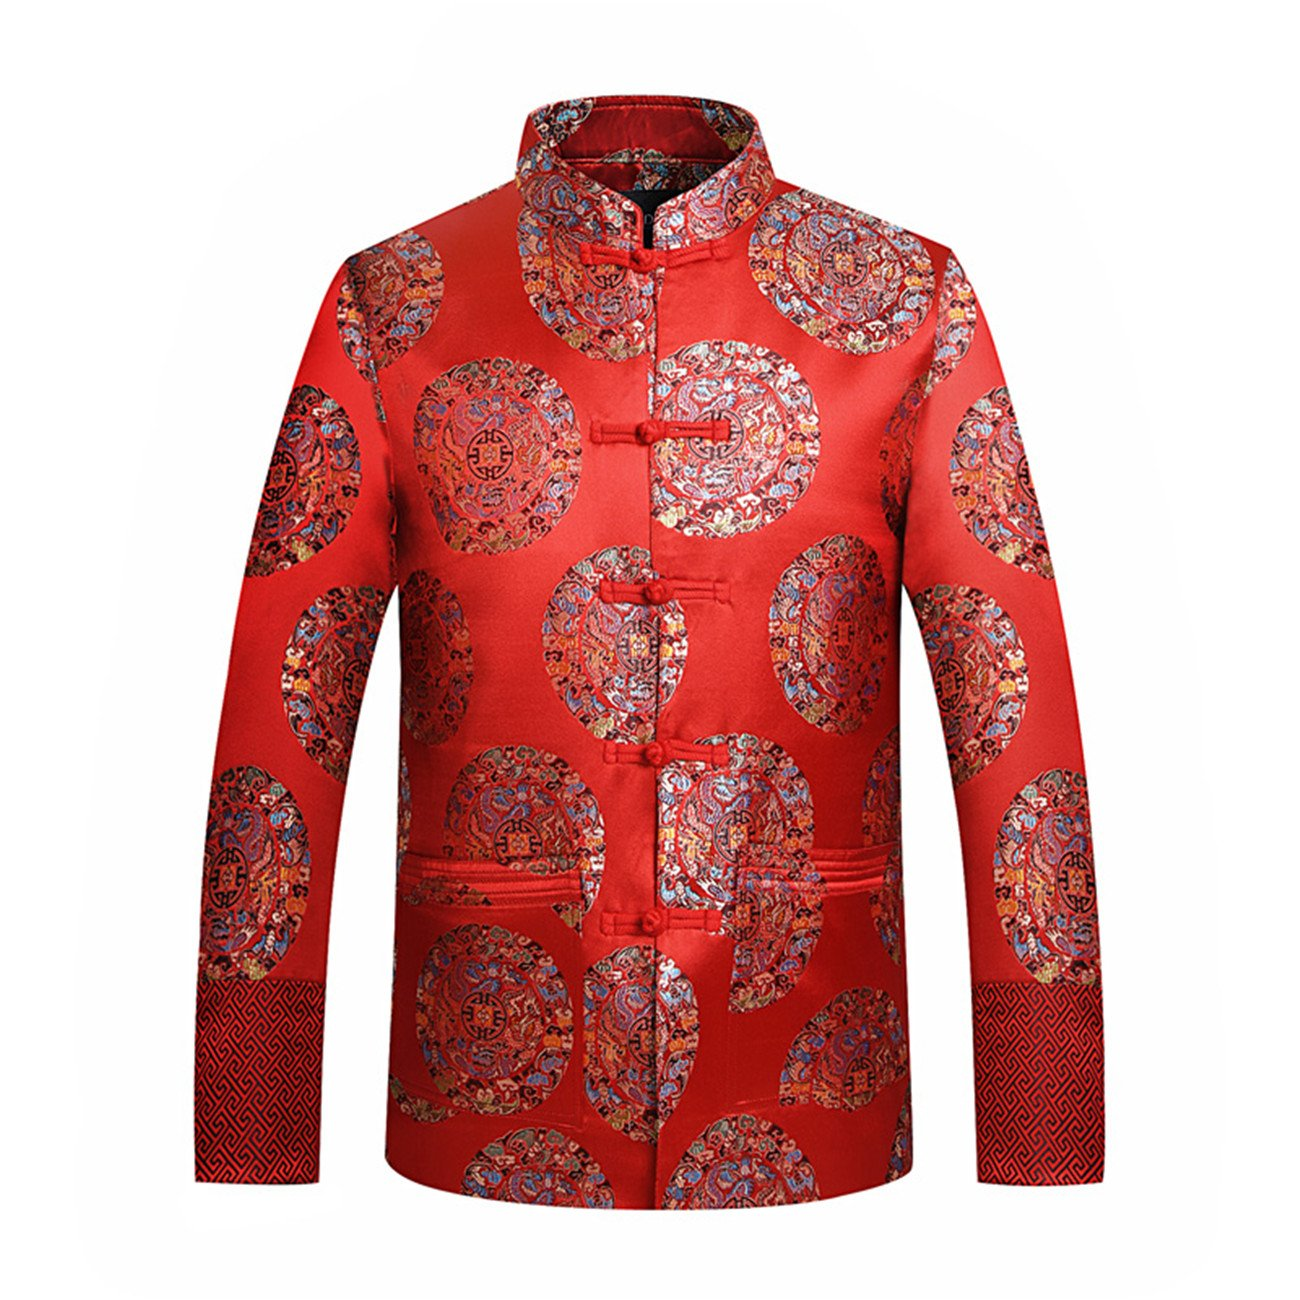 Men's O-neck Long Sleeve Stand Collar Chinese Style Disk Buckle Embroidery TangJackets(L,red)